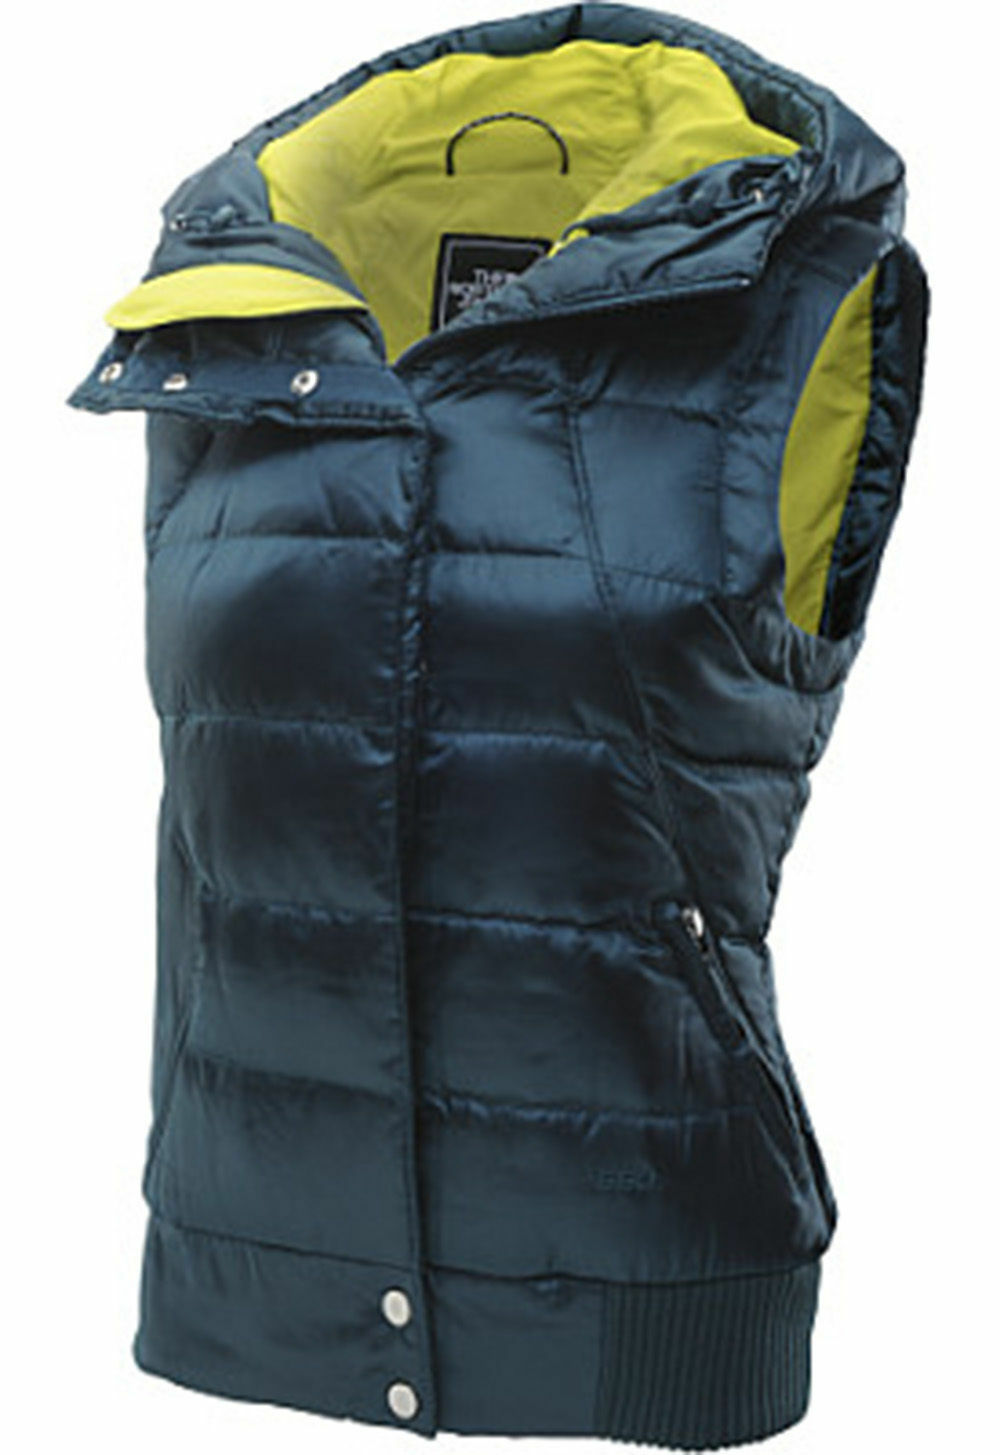 NEW THE NORTH FACE SZ L CX36N4M OH SNAP VEST 550 DOWN DEEP TEAL blueE